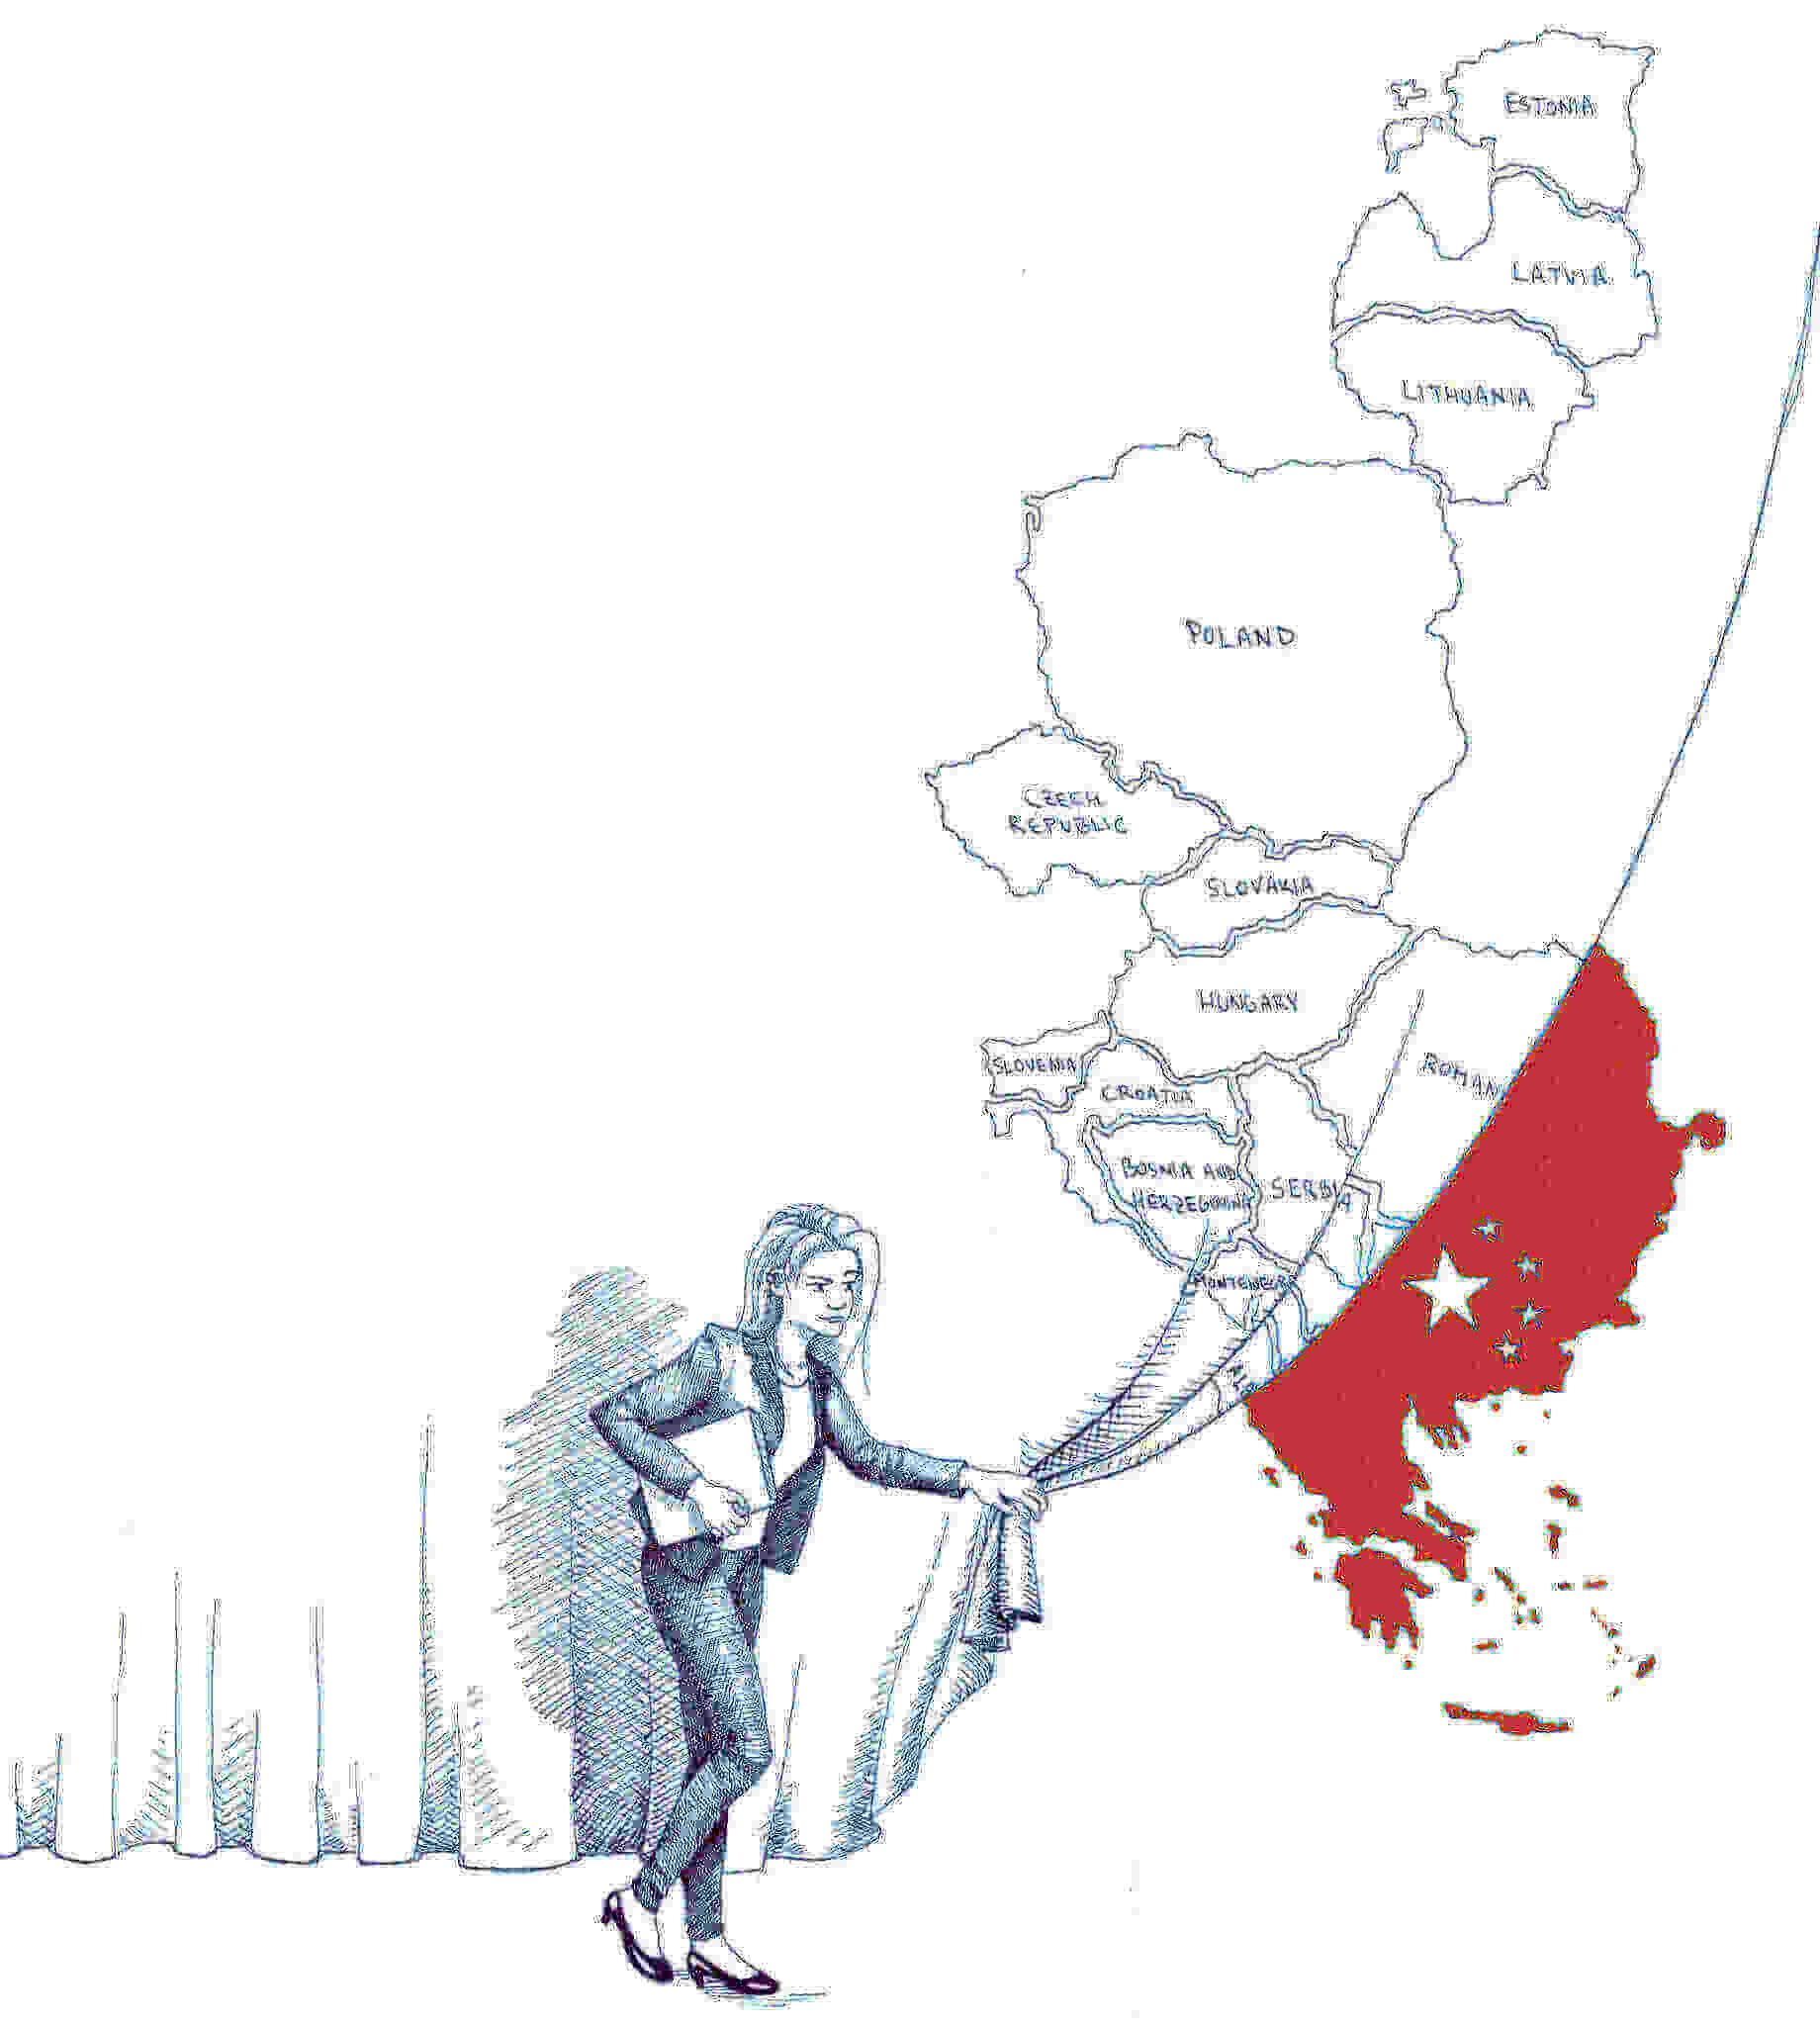 New publication: Empty shell no more: China's growing footprint in Central and Eastern Europe